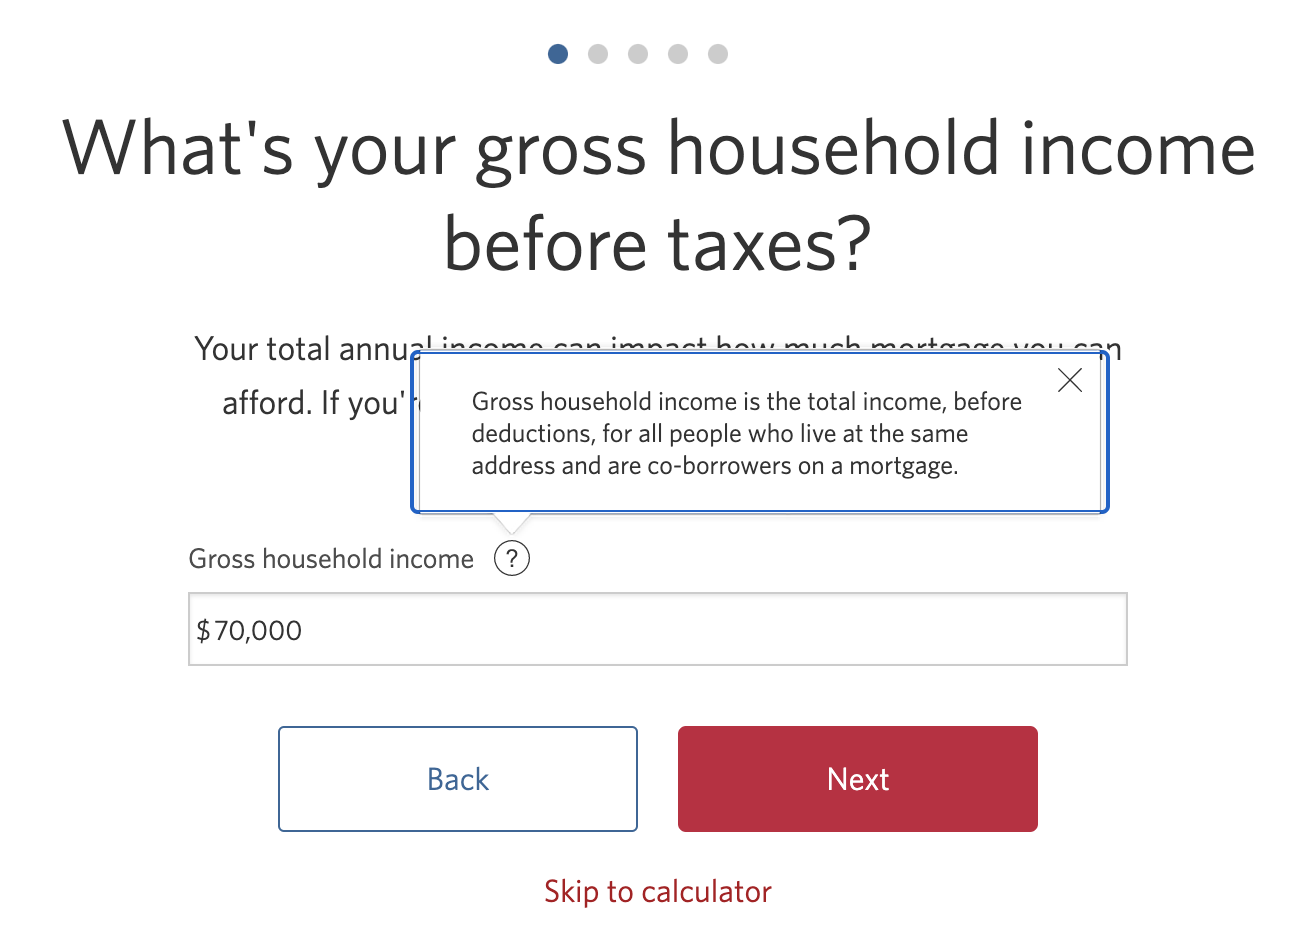 Form field for gross household income including tool tip with the definition